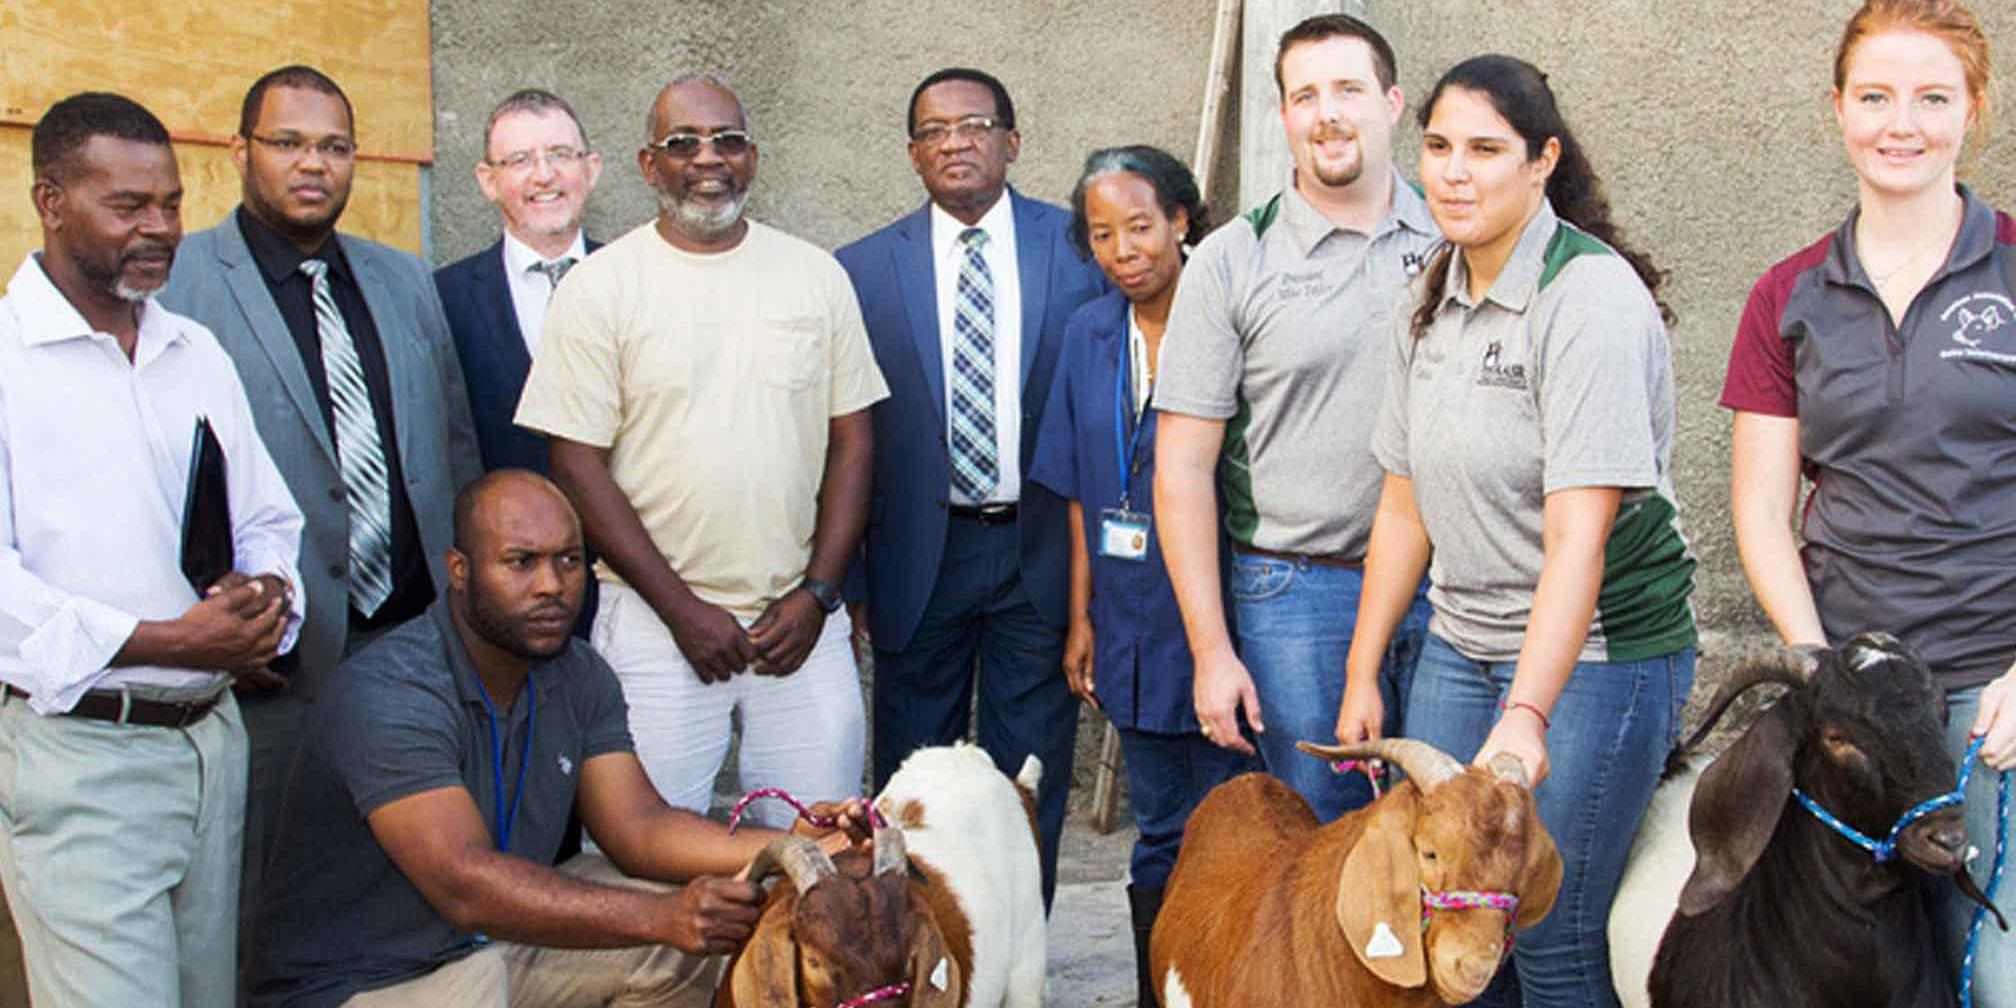 Ross Vet team and partners standing with goats